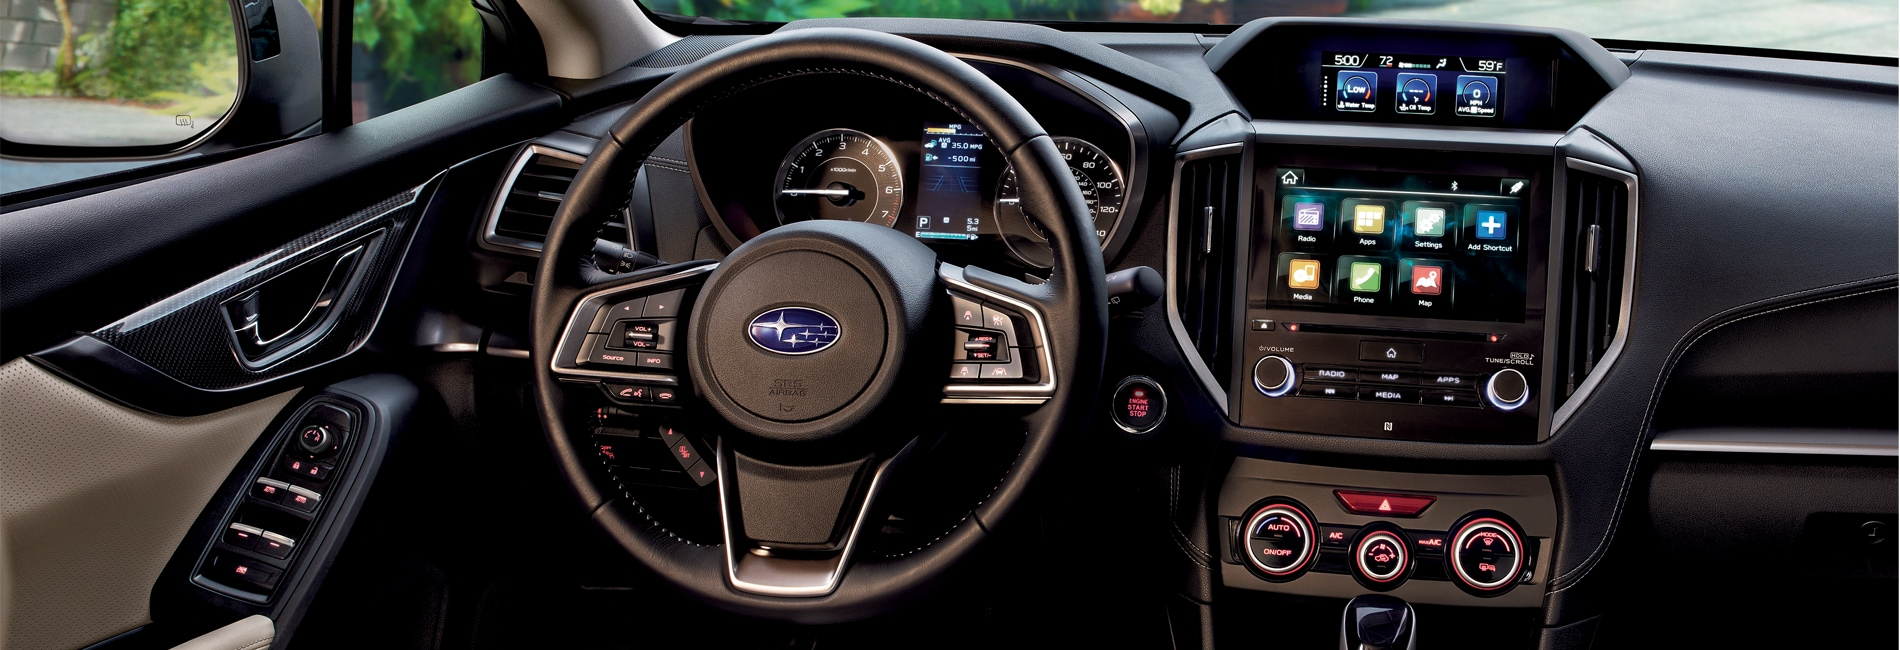 2018 Subaru Impreza Interior Features